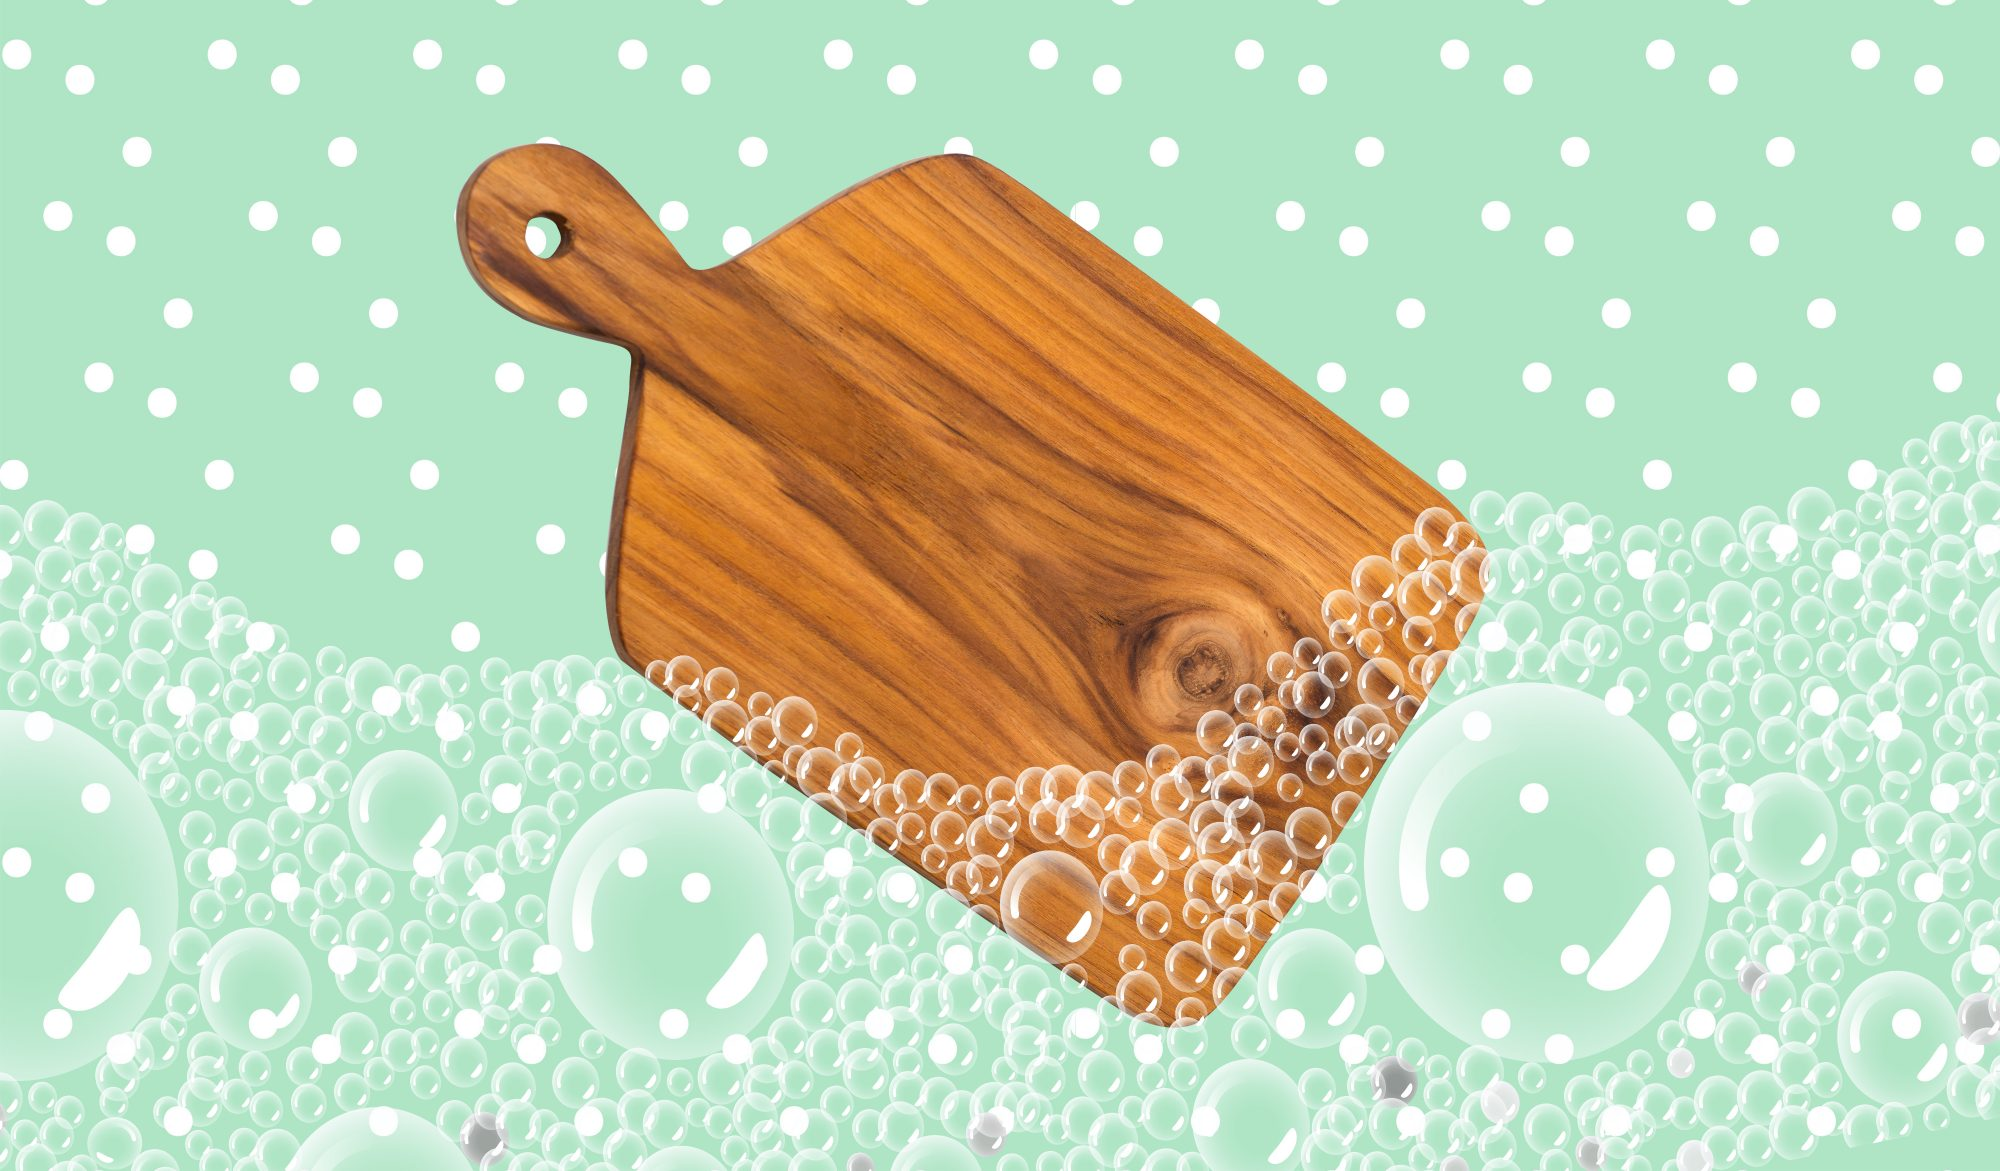 How To Clean Wood Cutting Boards And Keep Them Germ Free Real Simple